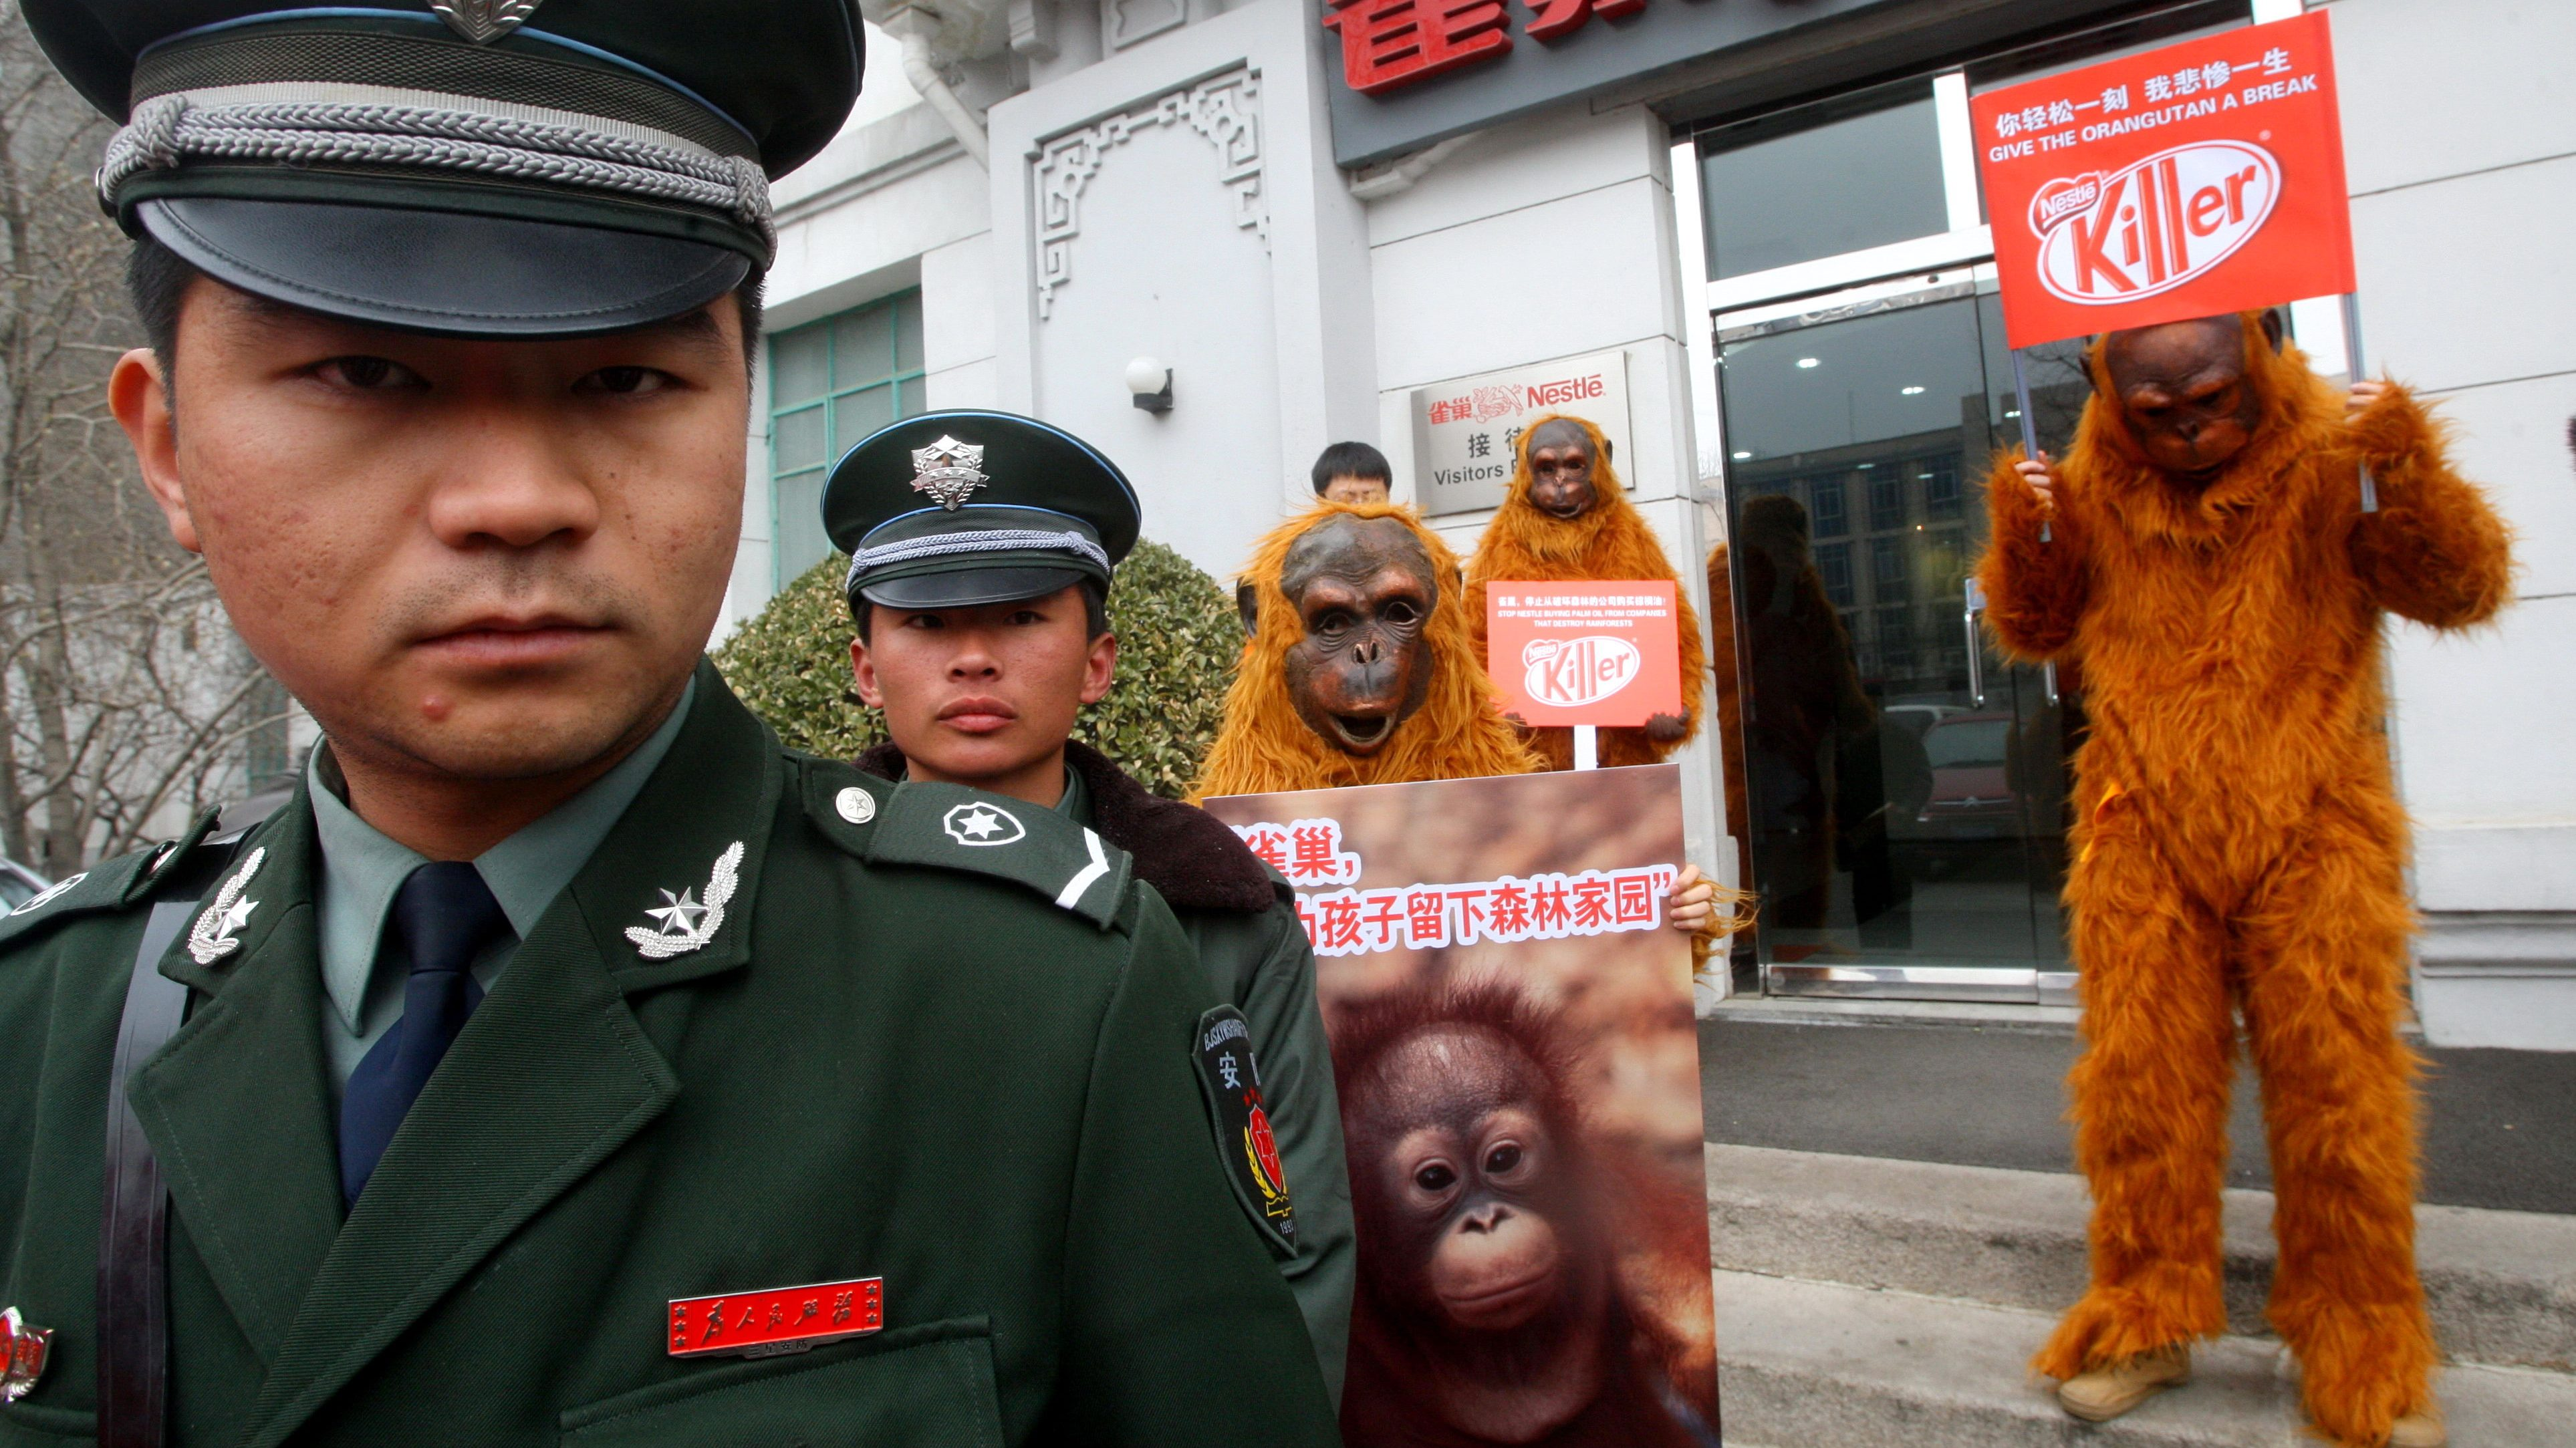 Two security guards stand by the Greenpeace volunteers in orangutan costumes protesting outside the reception office of Nestle in Beijing 18 March 2010. Greenpeace calls on Nestle to stop purchasing palm oil from a Indonesian supplier accused of destroying rainforests recklessly which endangered the specie